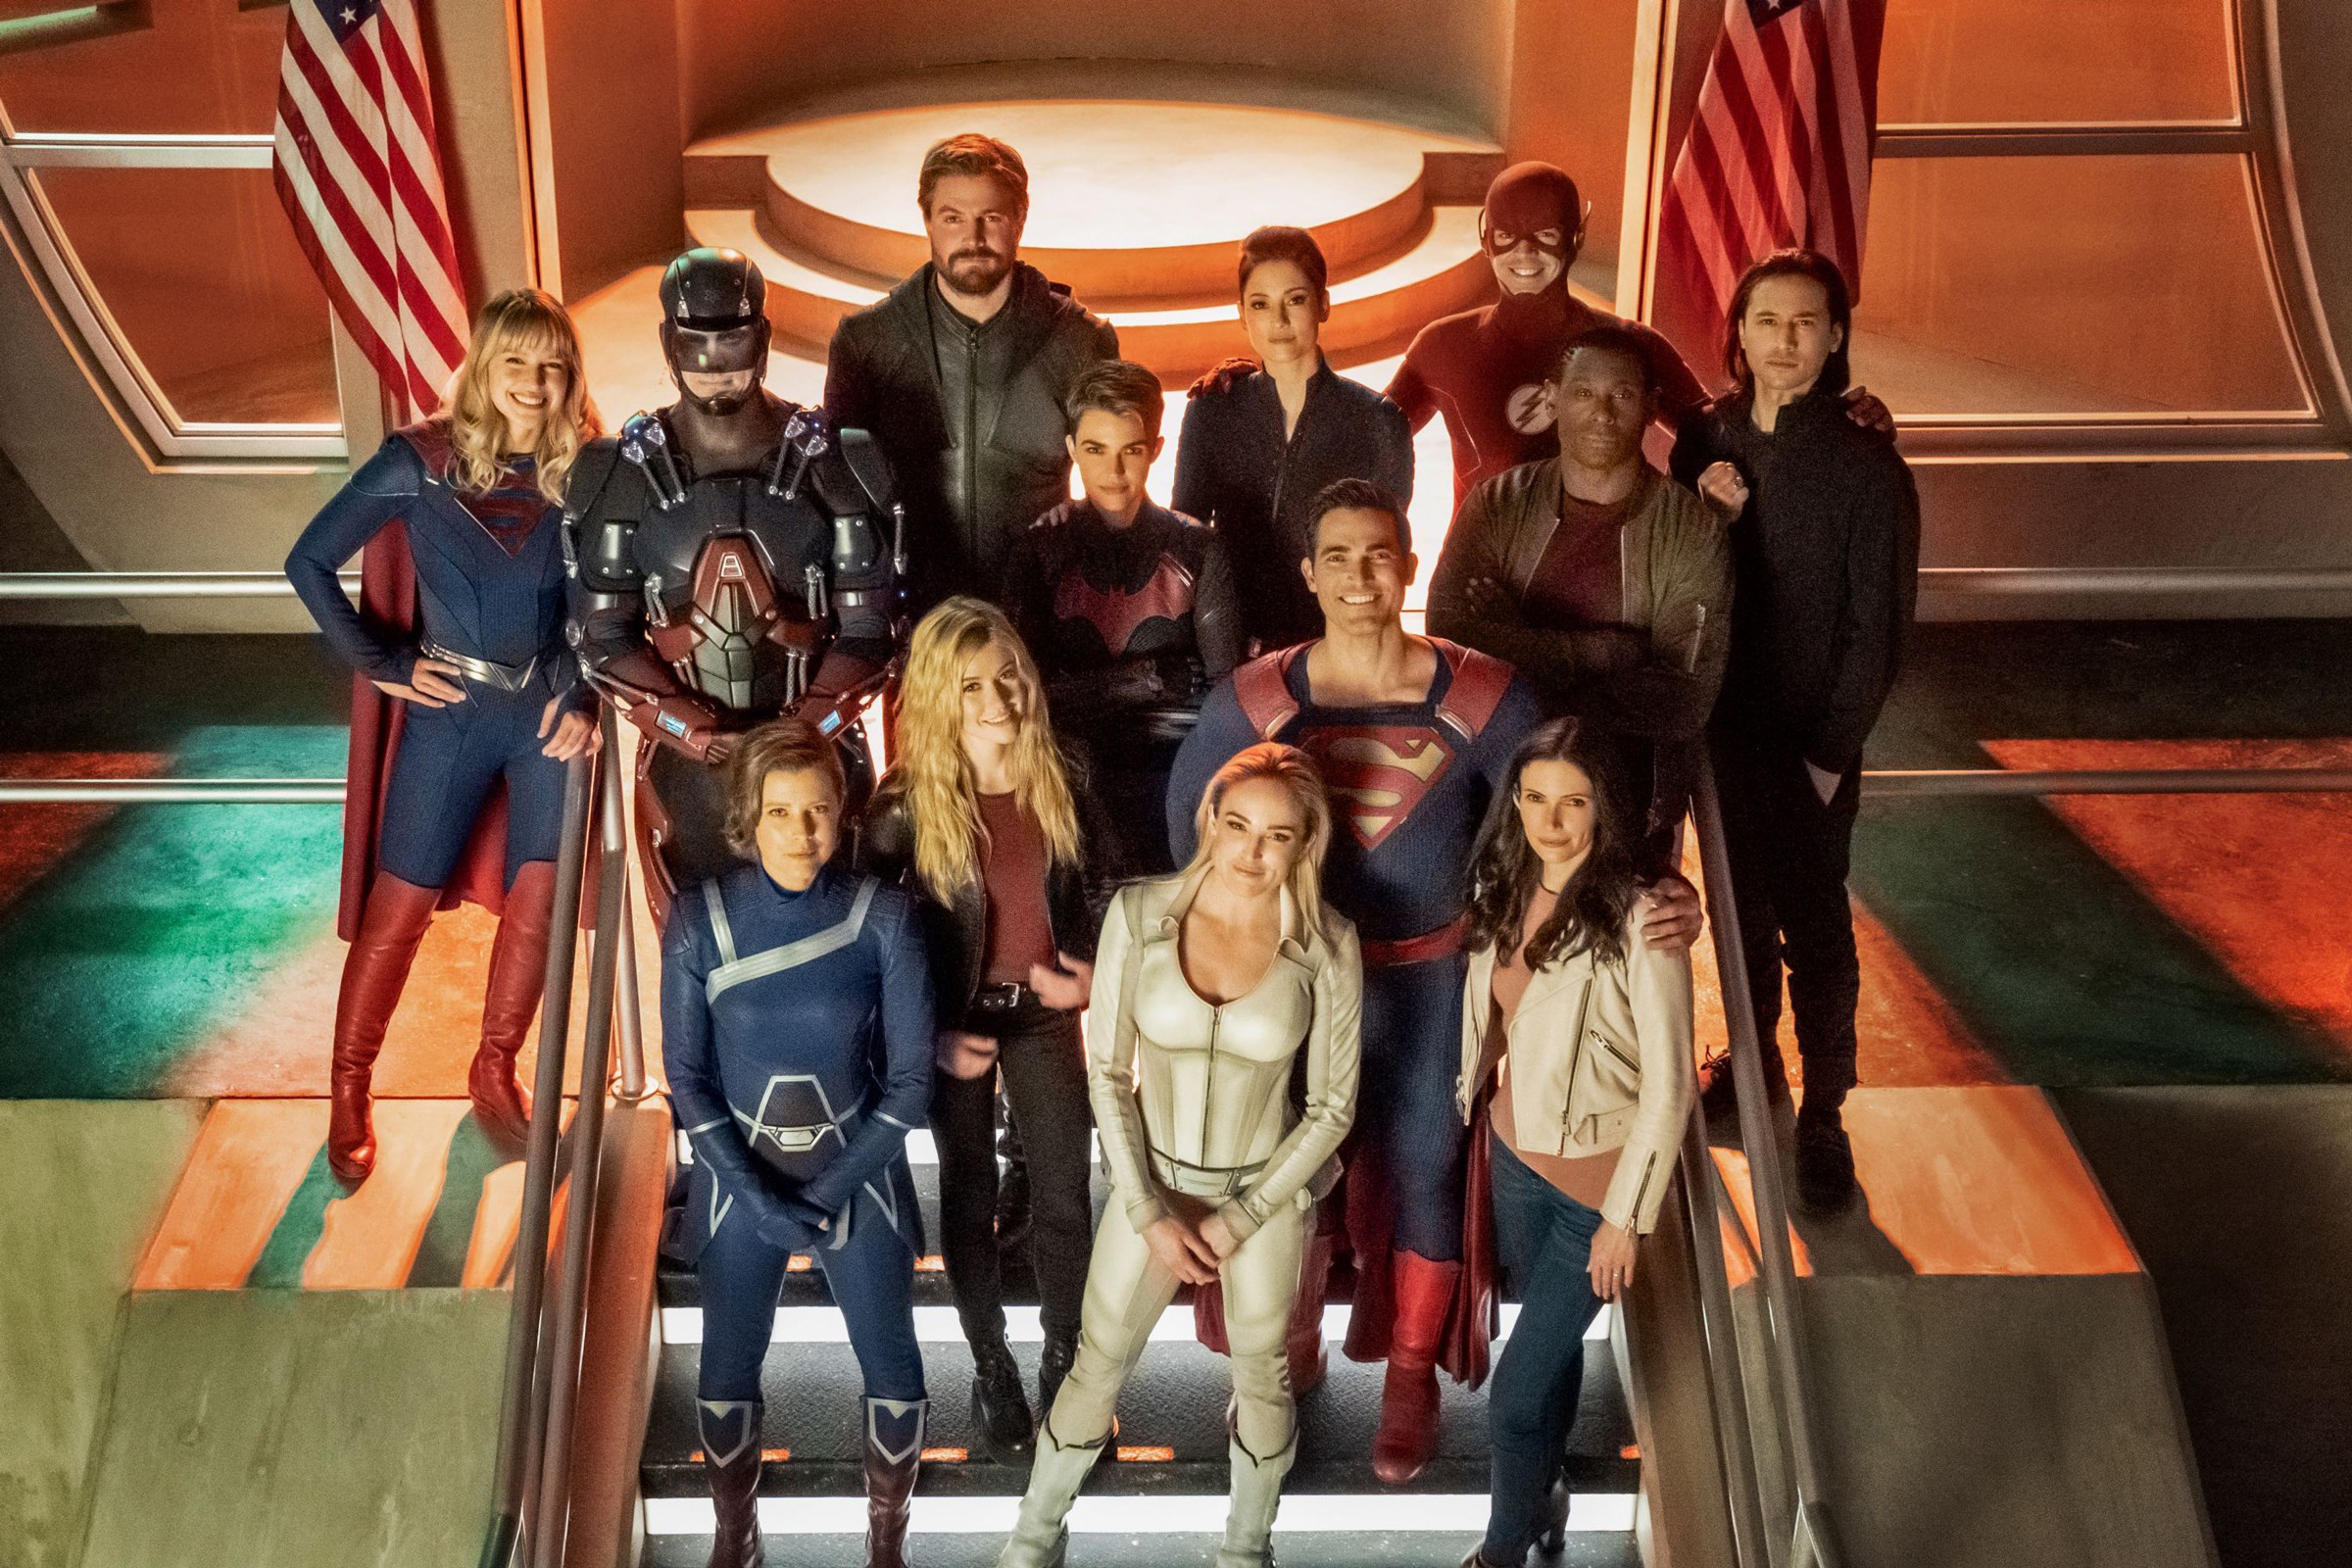 Crisis On Infinite Earths crossover event won't air every episode in the UK